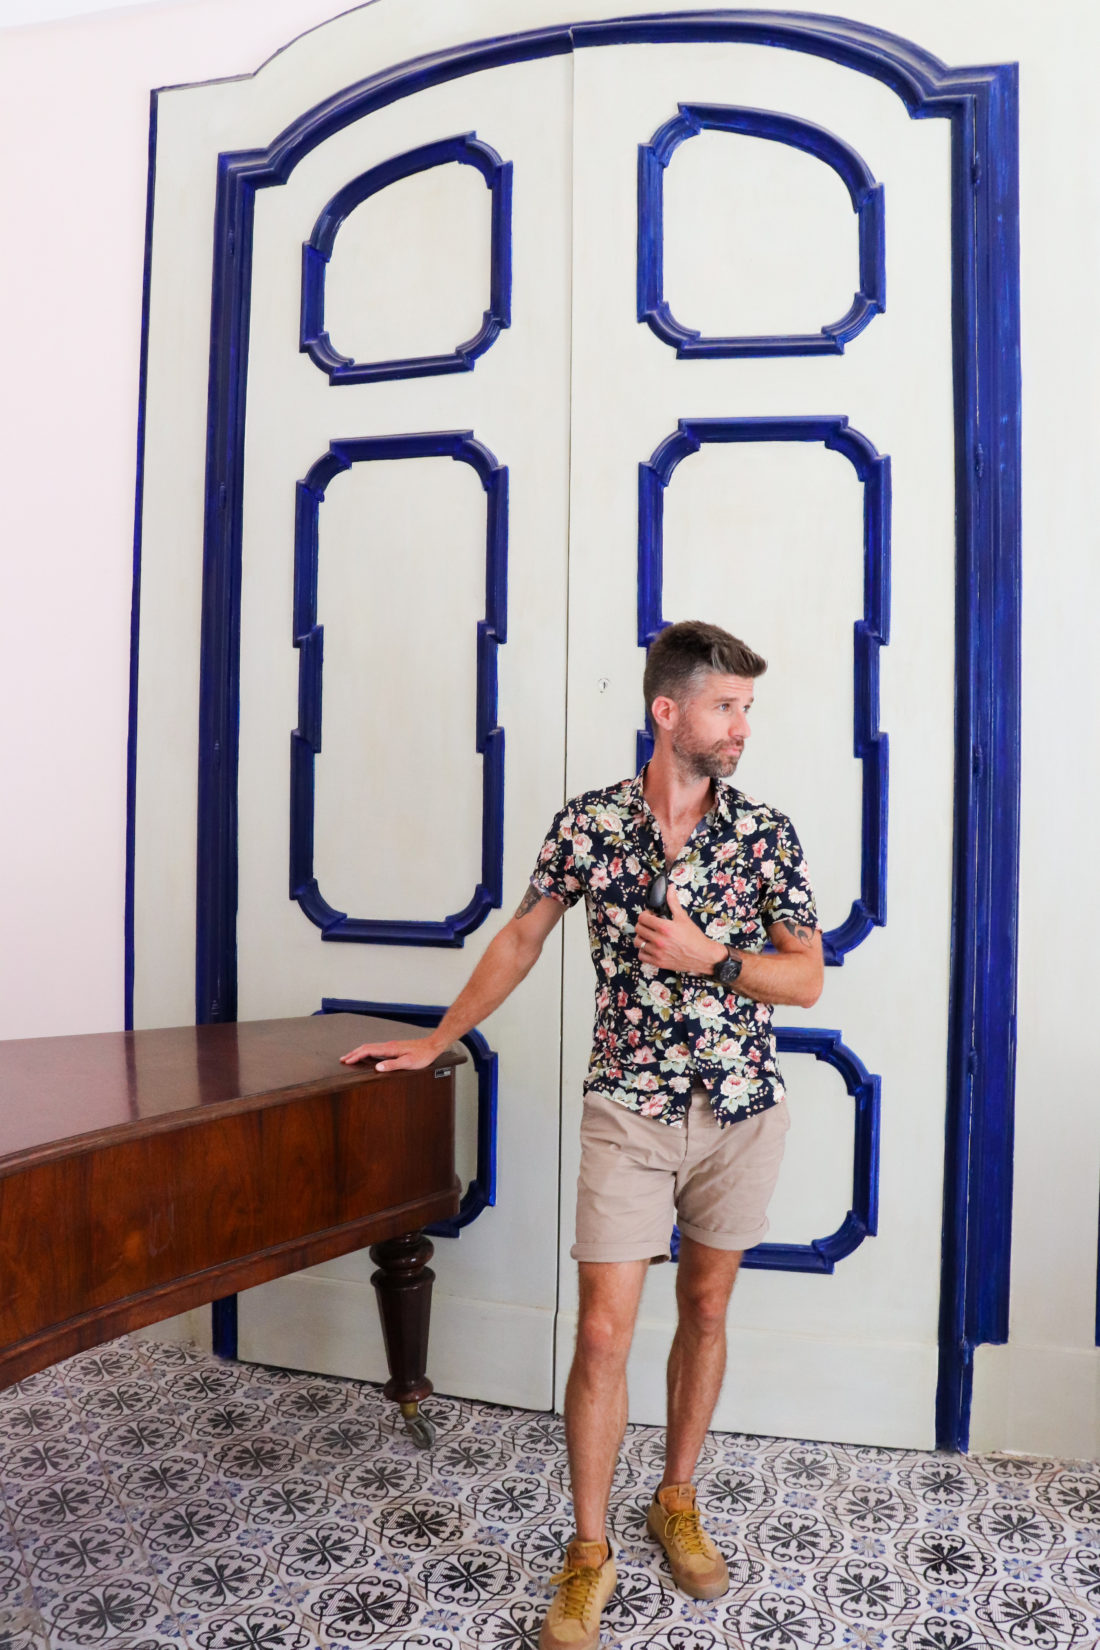 Kyle Martino in front of white and blue doors in Italy